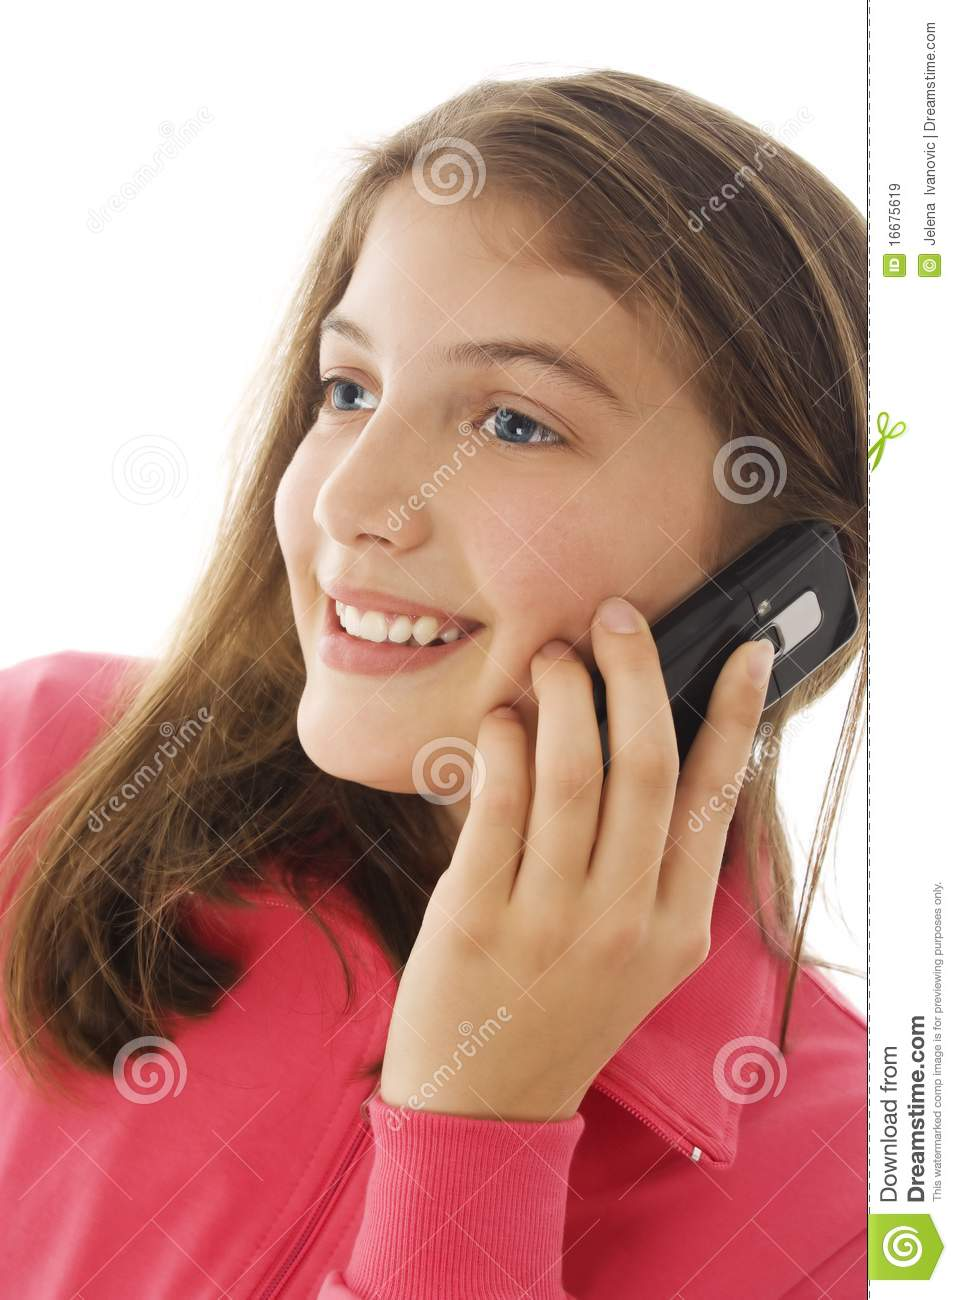 Cute young teenage girl talking on a cellphone